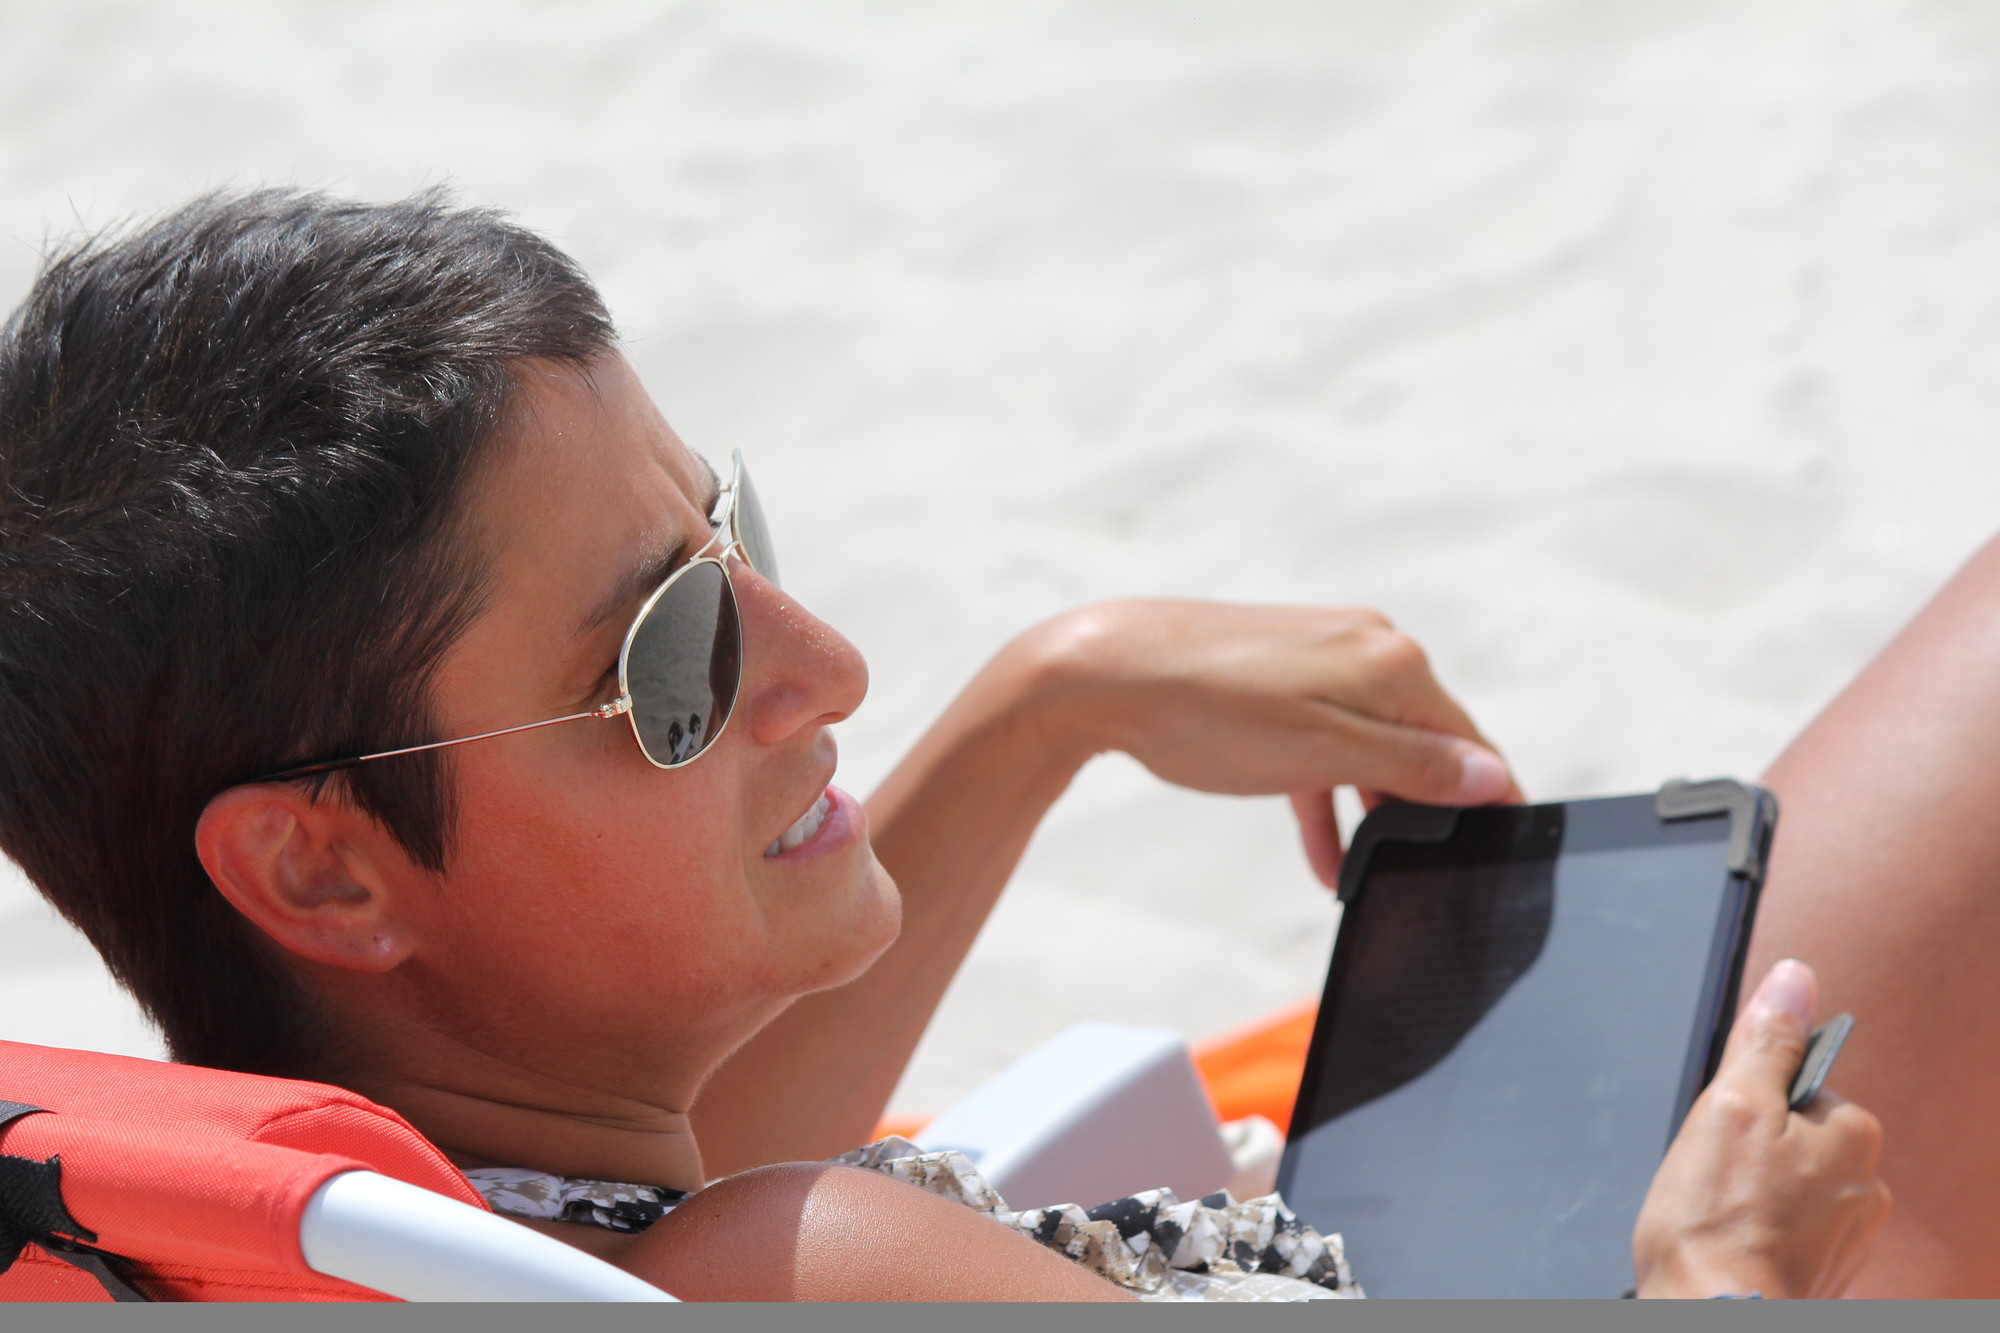 Valerie Polizzotto enjoyed the benefits of having free Wi-Fi on the beach during her visit to Jones Beach State Park on Aug. 6, when the new service was announced.